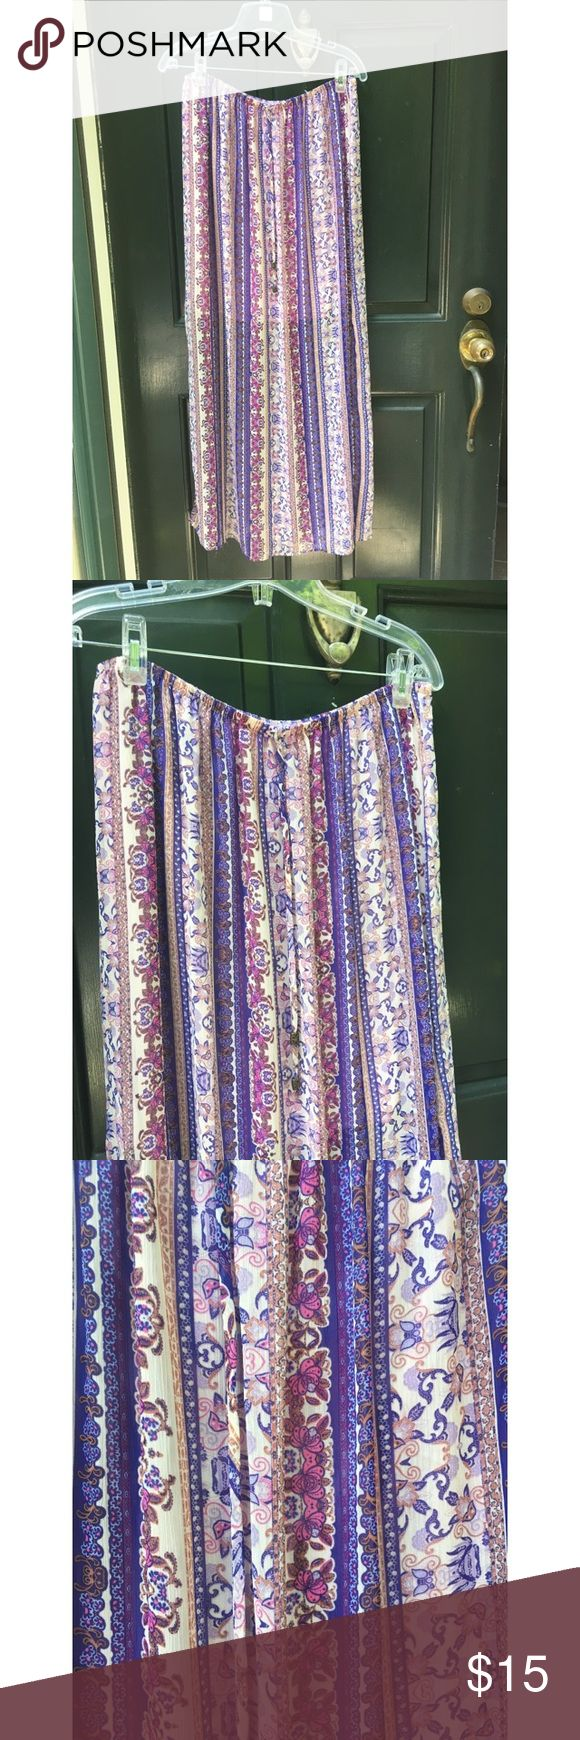 ✨ Purple Boho Paisley Maxi Skirt - Purple Boho Paisley Maxi Skirt - Gorgeous flowy and lightweight boho maxi skirt from Mossimo  - Main colors: purple, white, pink, tan  - Has slip underneath (see photo) and slit on side that comes up to around knee length, two strings in front to tie/tighten  - Elastic waist  - Purchased and never worn, in great condition  - Super flowy and lightweight, perfect for summer!  - Brand: Mossimo / Target - Size: L  *20% off 2+ * Make me an offer!! Mossimo Supply…